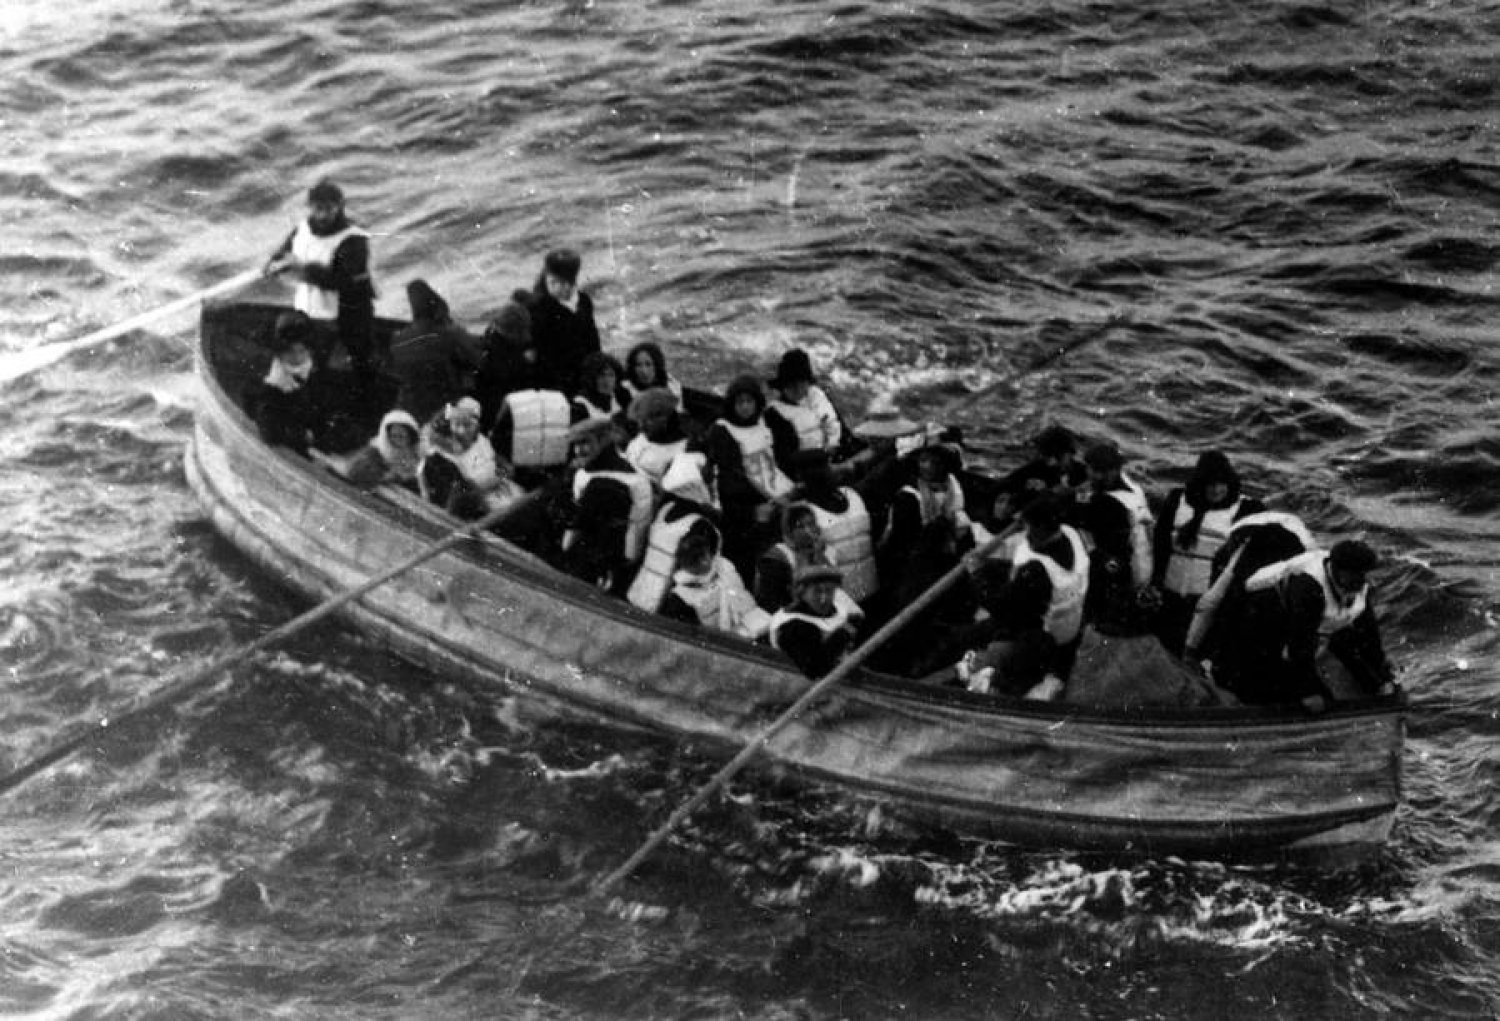 Never Before Seen Eerie Black and White Photos Of The Titanic